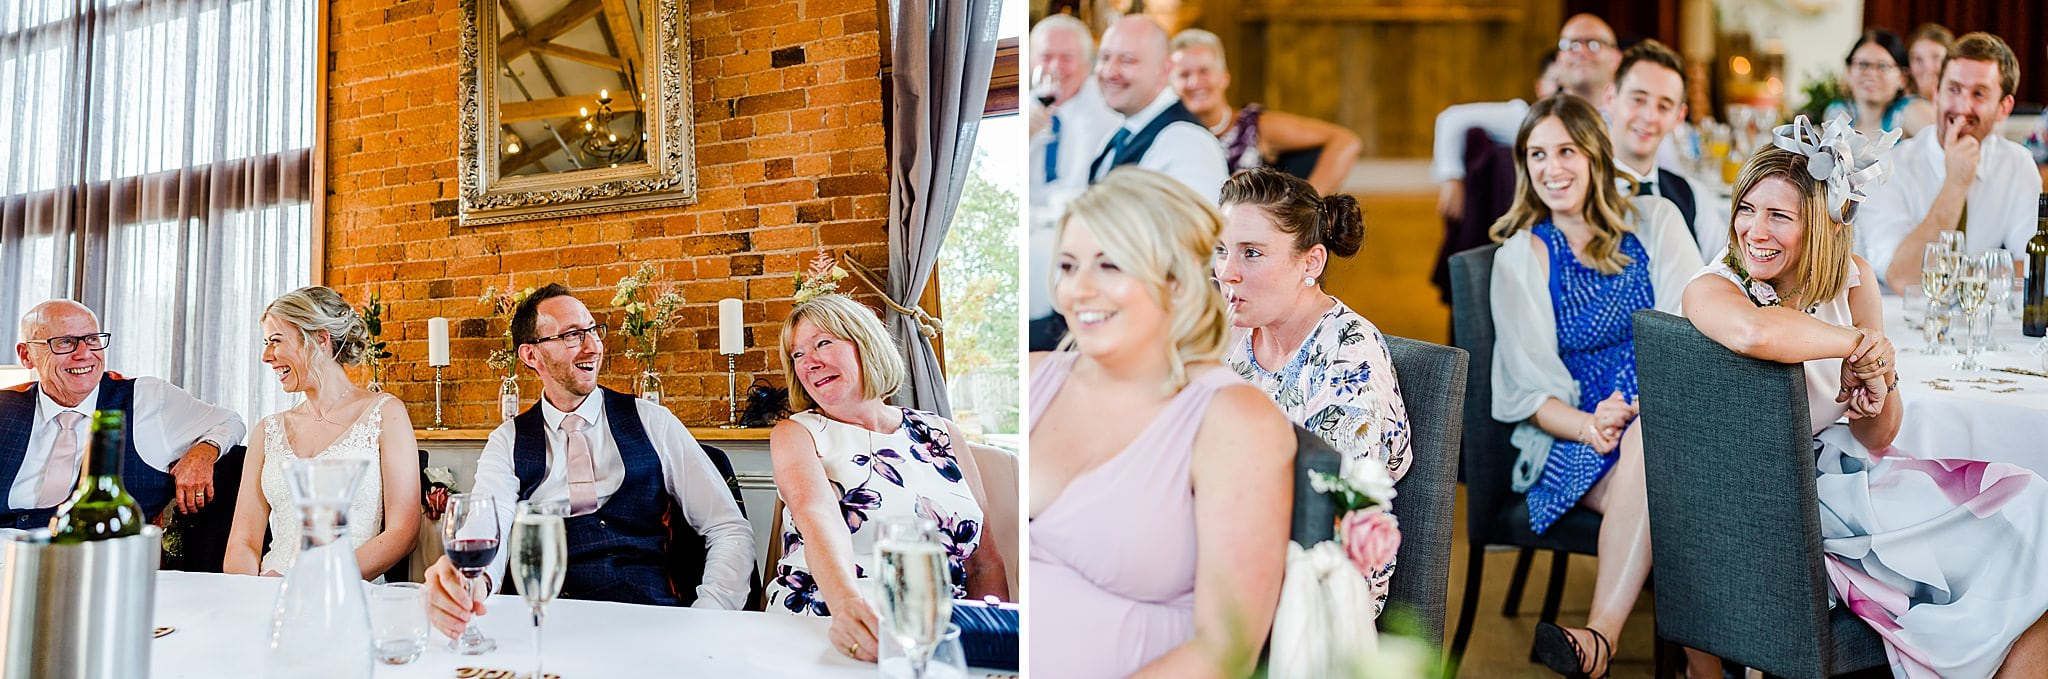 Wedding guests enjoying the wedding speeches at Carriage Hall